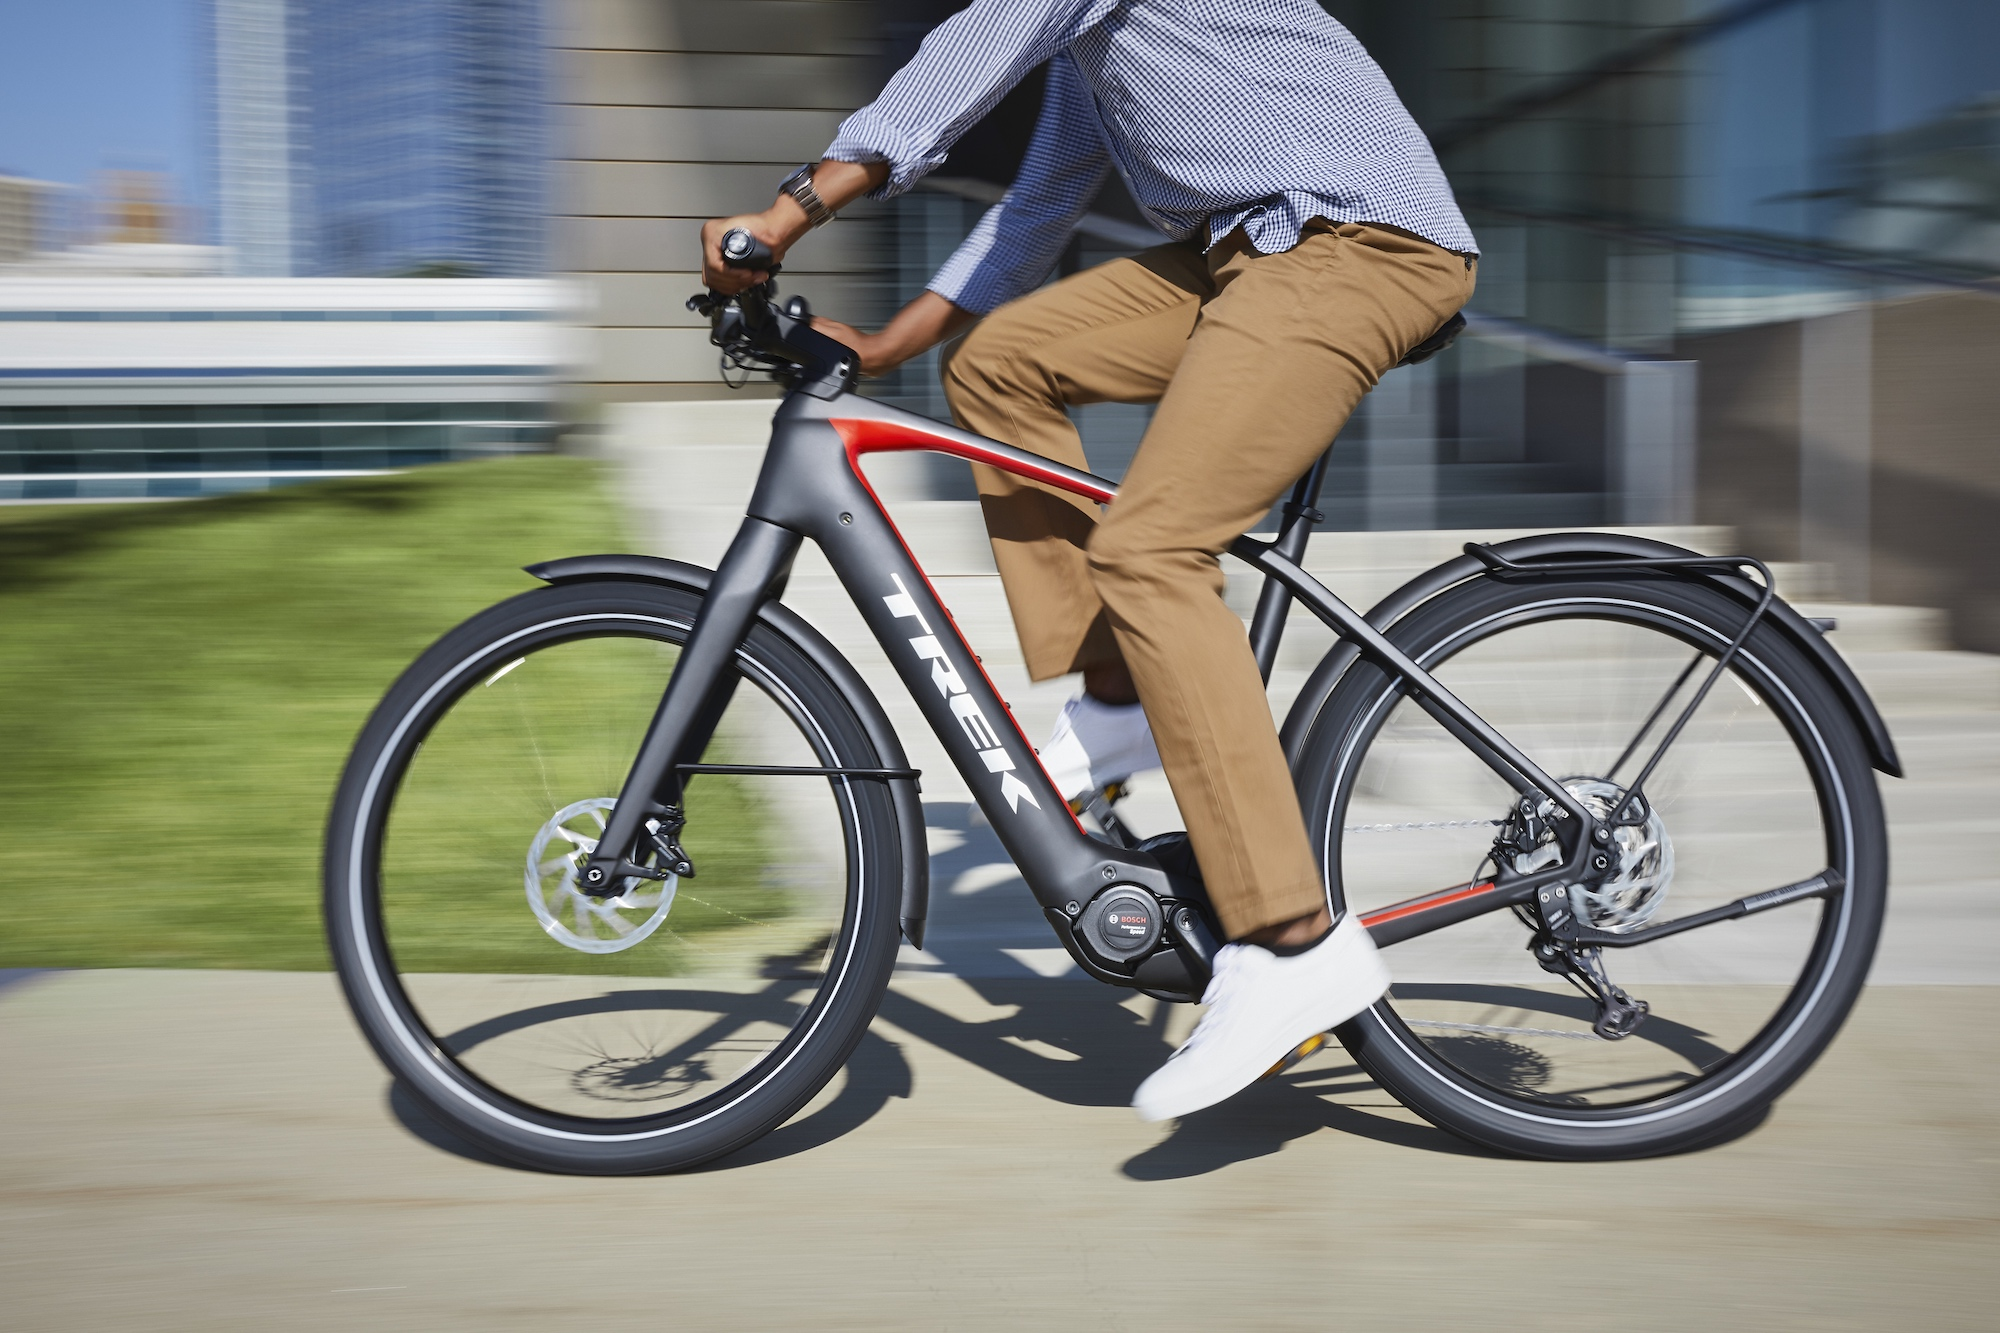 Pedaling with extra power: A look at Trek's new electric bike ...